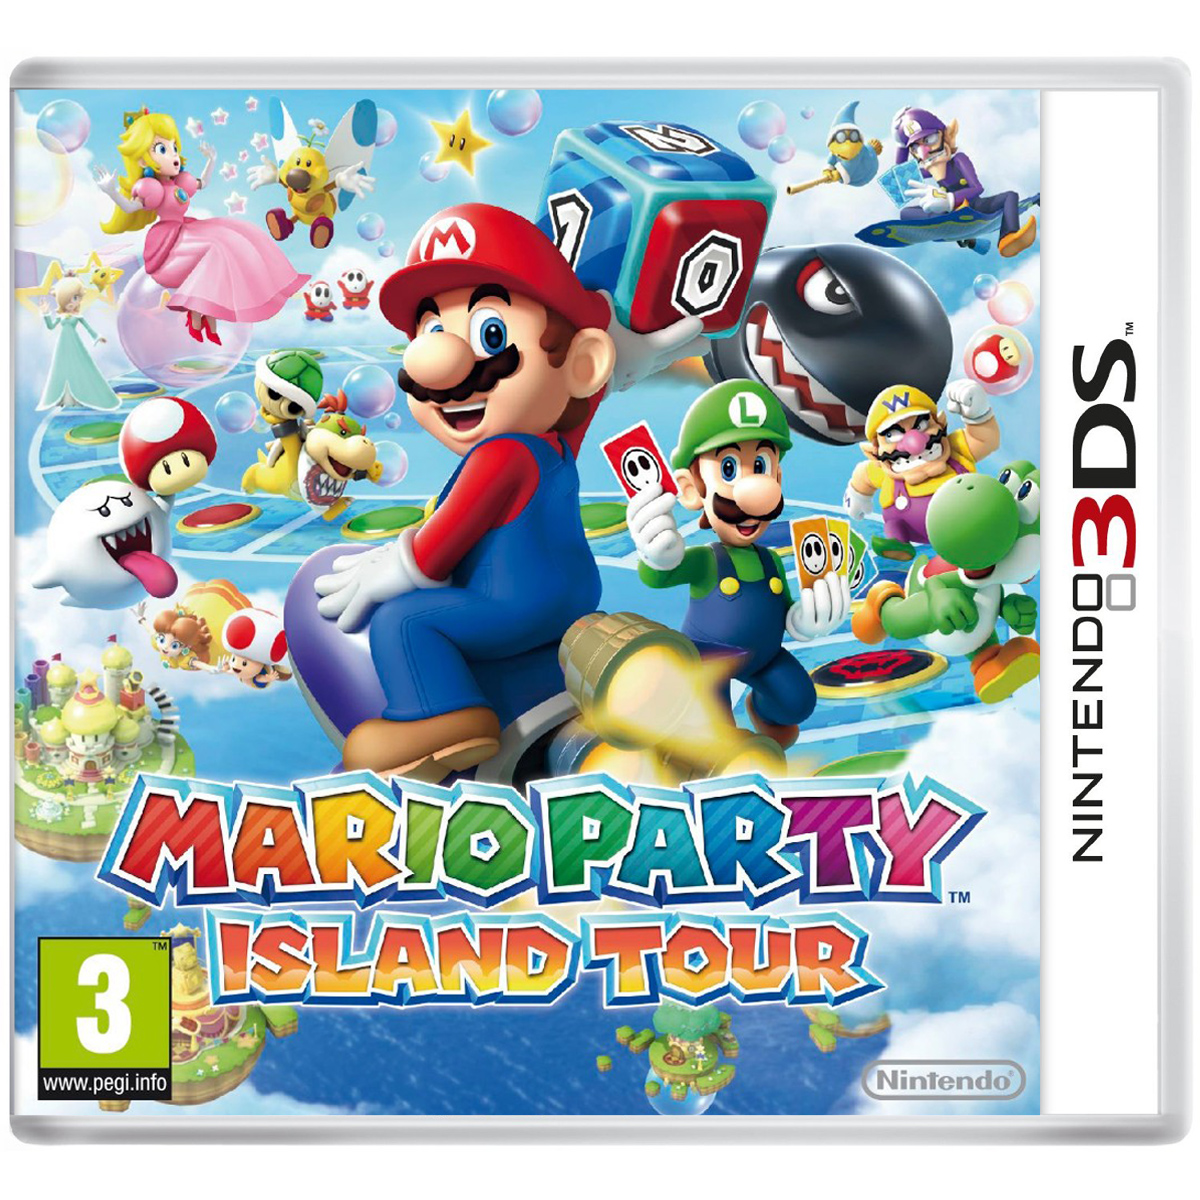 Jeux Nintendo 3DS Mario Party Island Tour (Nintendo 3DS/2DS) Mario Party Island Tour (Nintendo 3DS/2DS)